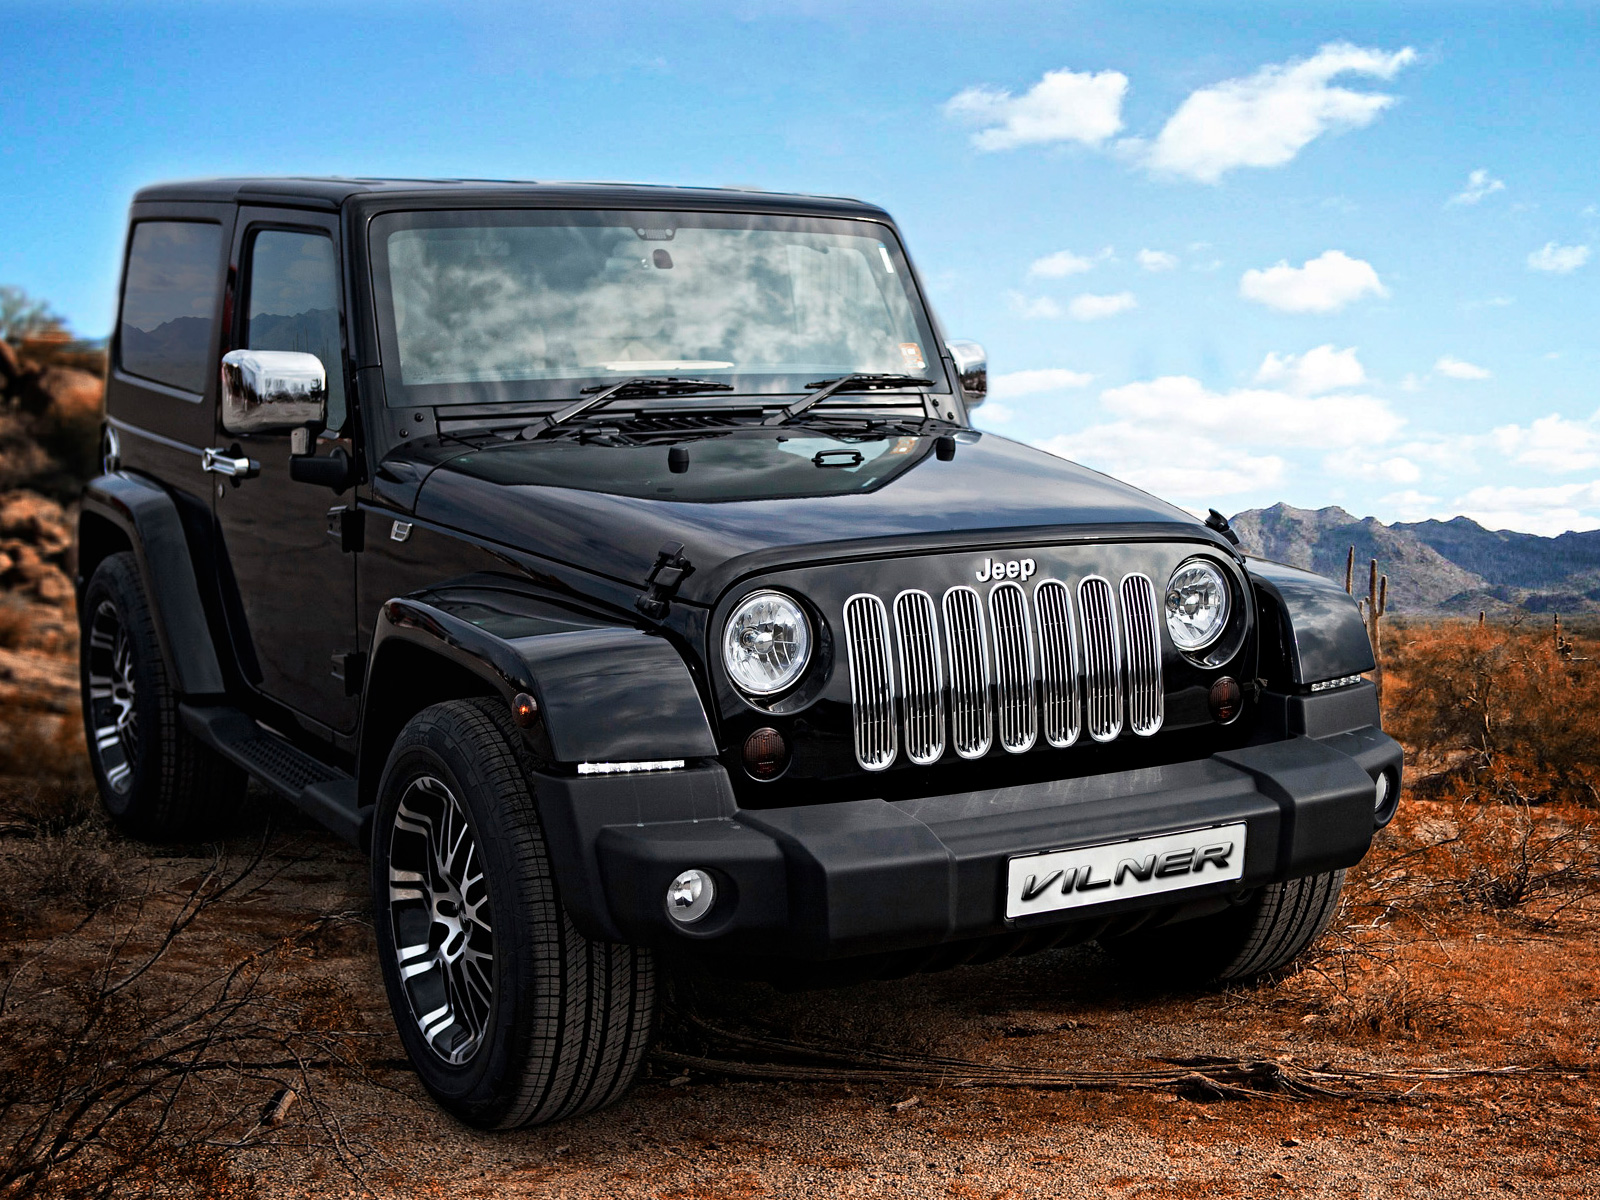 ... Jeep Wrangler Rubicon Convertible 2012 ...